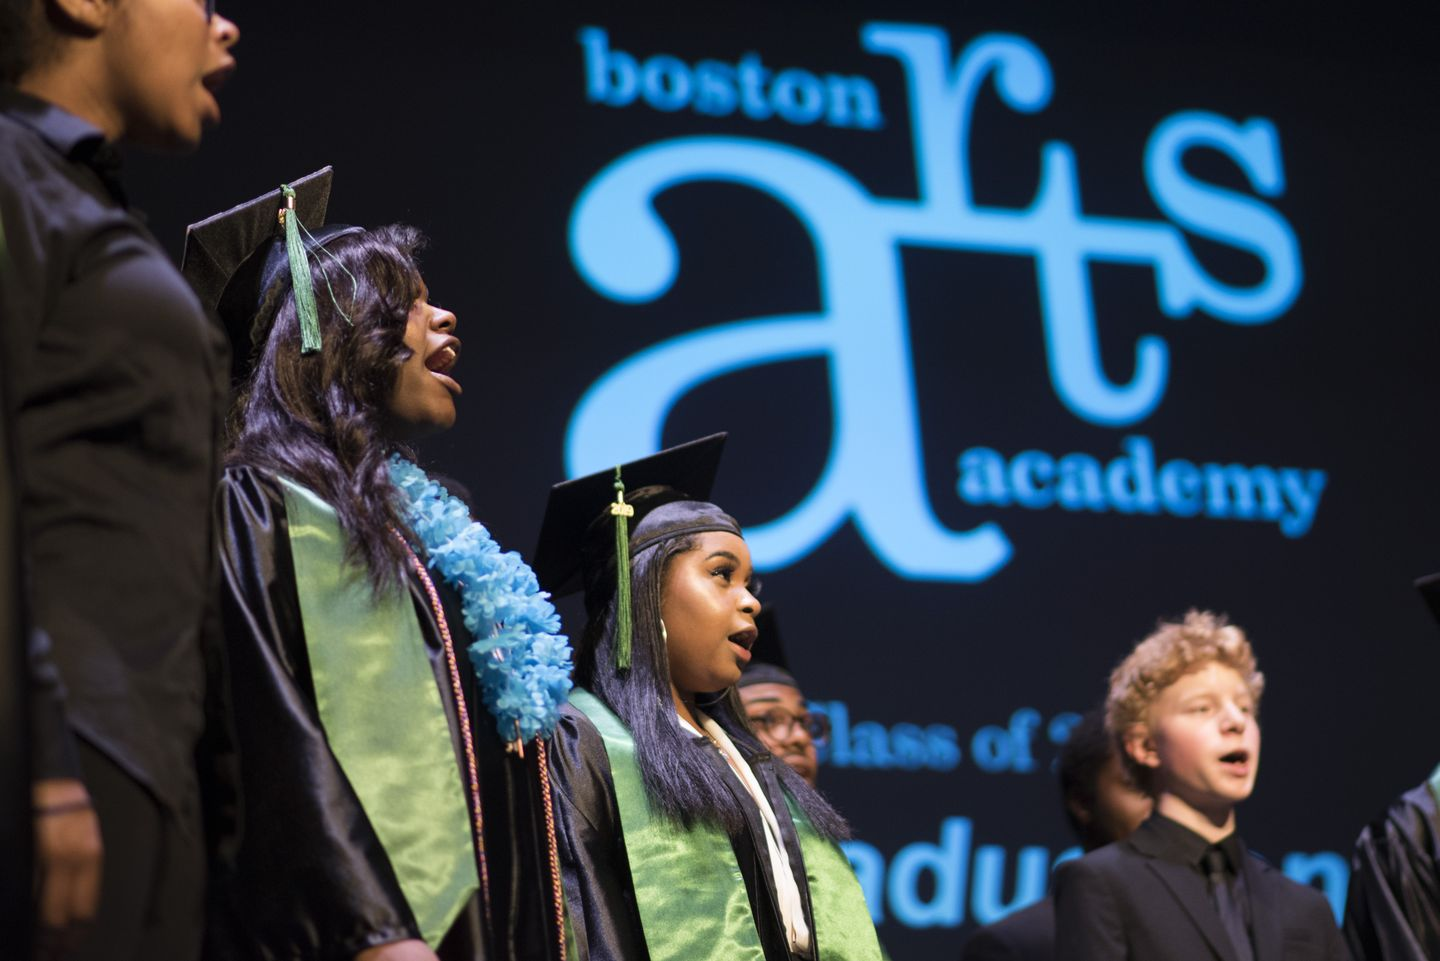 A group of young people in graduation caps singing in front of a banner with the Boston Arts Academy logo